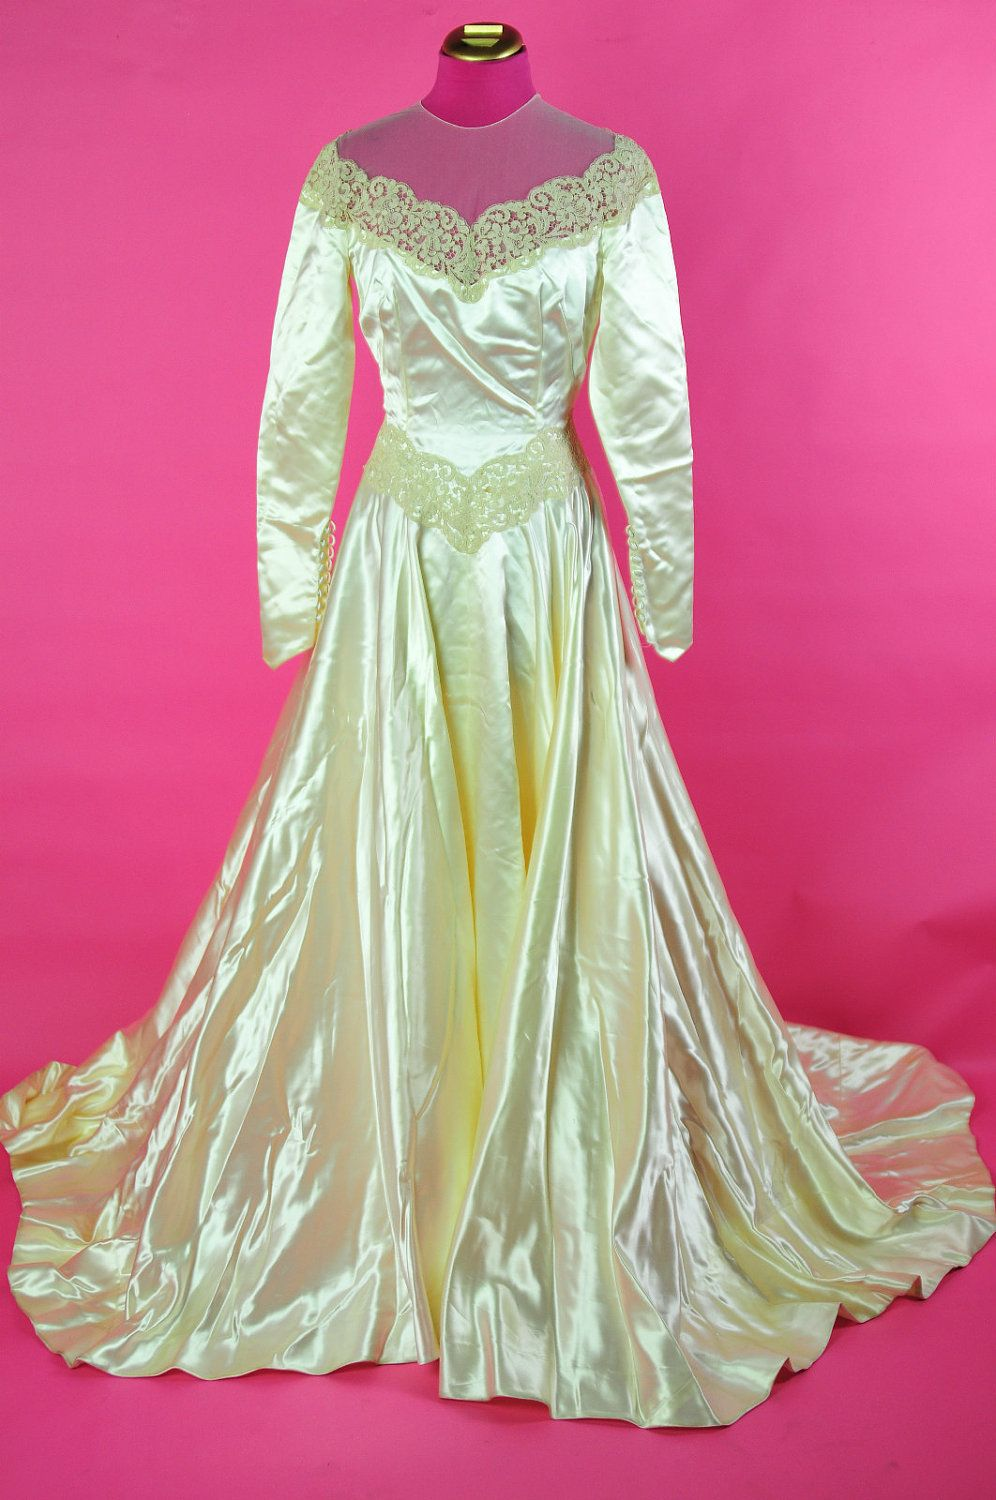 VTG 40s 50s Liquid Satin RARE chantilly lace Ivory wedding dress ...